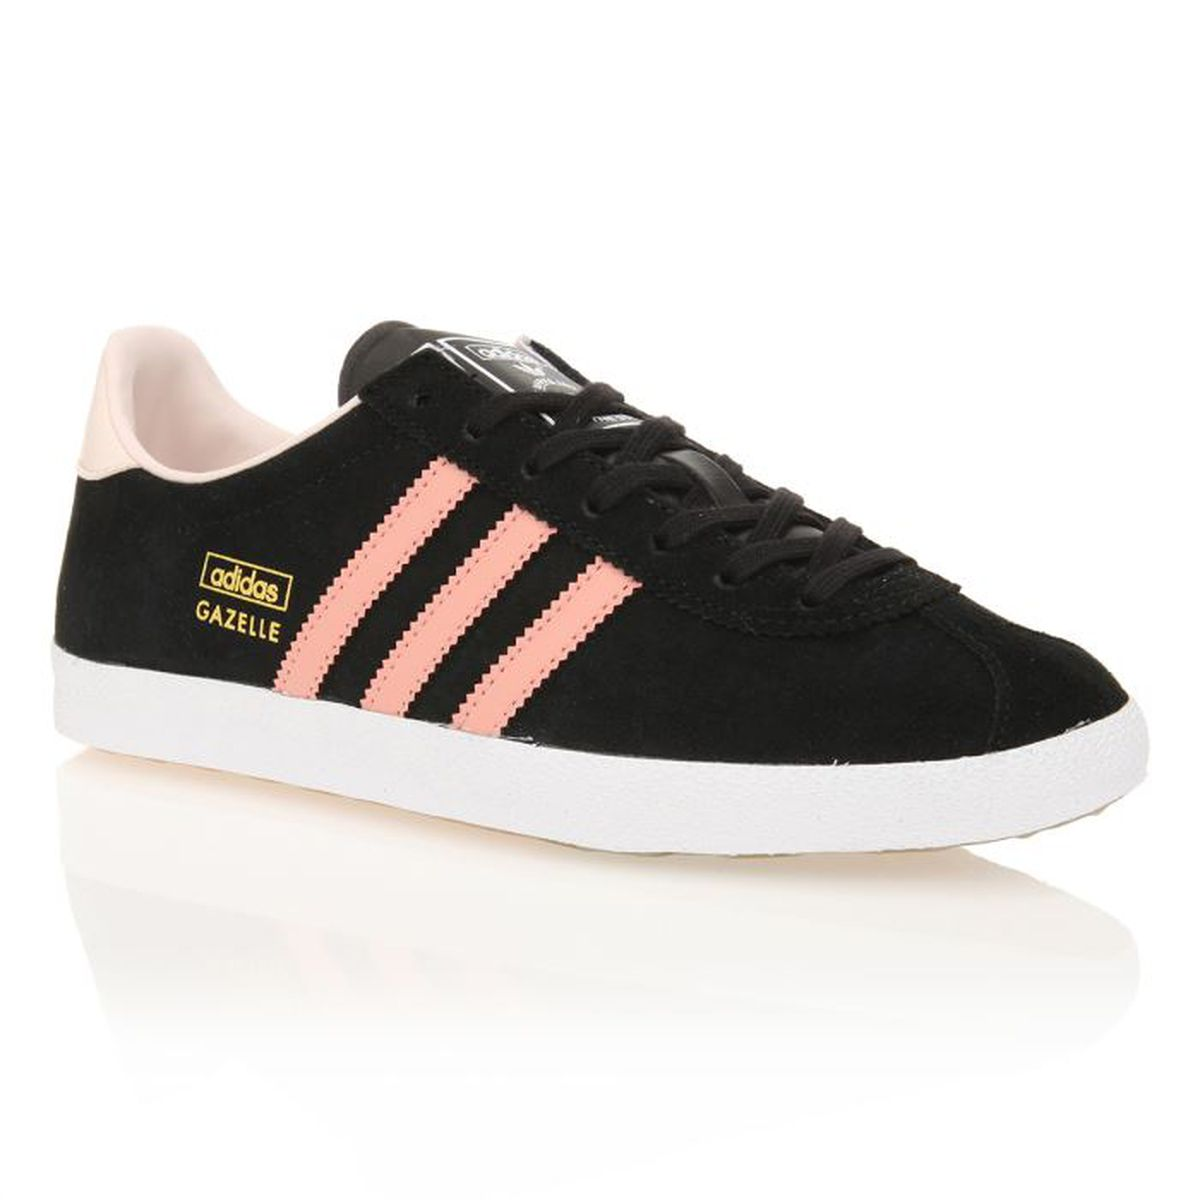 adidas originals baskets gazelle femme femme noir rose achat vente adidas baskets. Black Bedroom Furniture Sets. Home Design Ideas